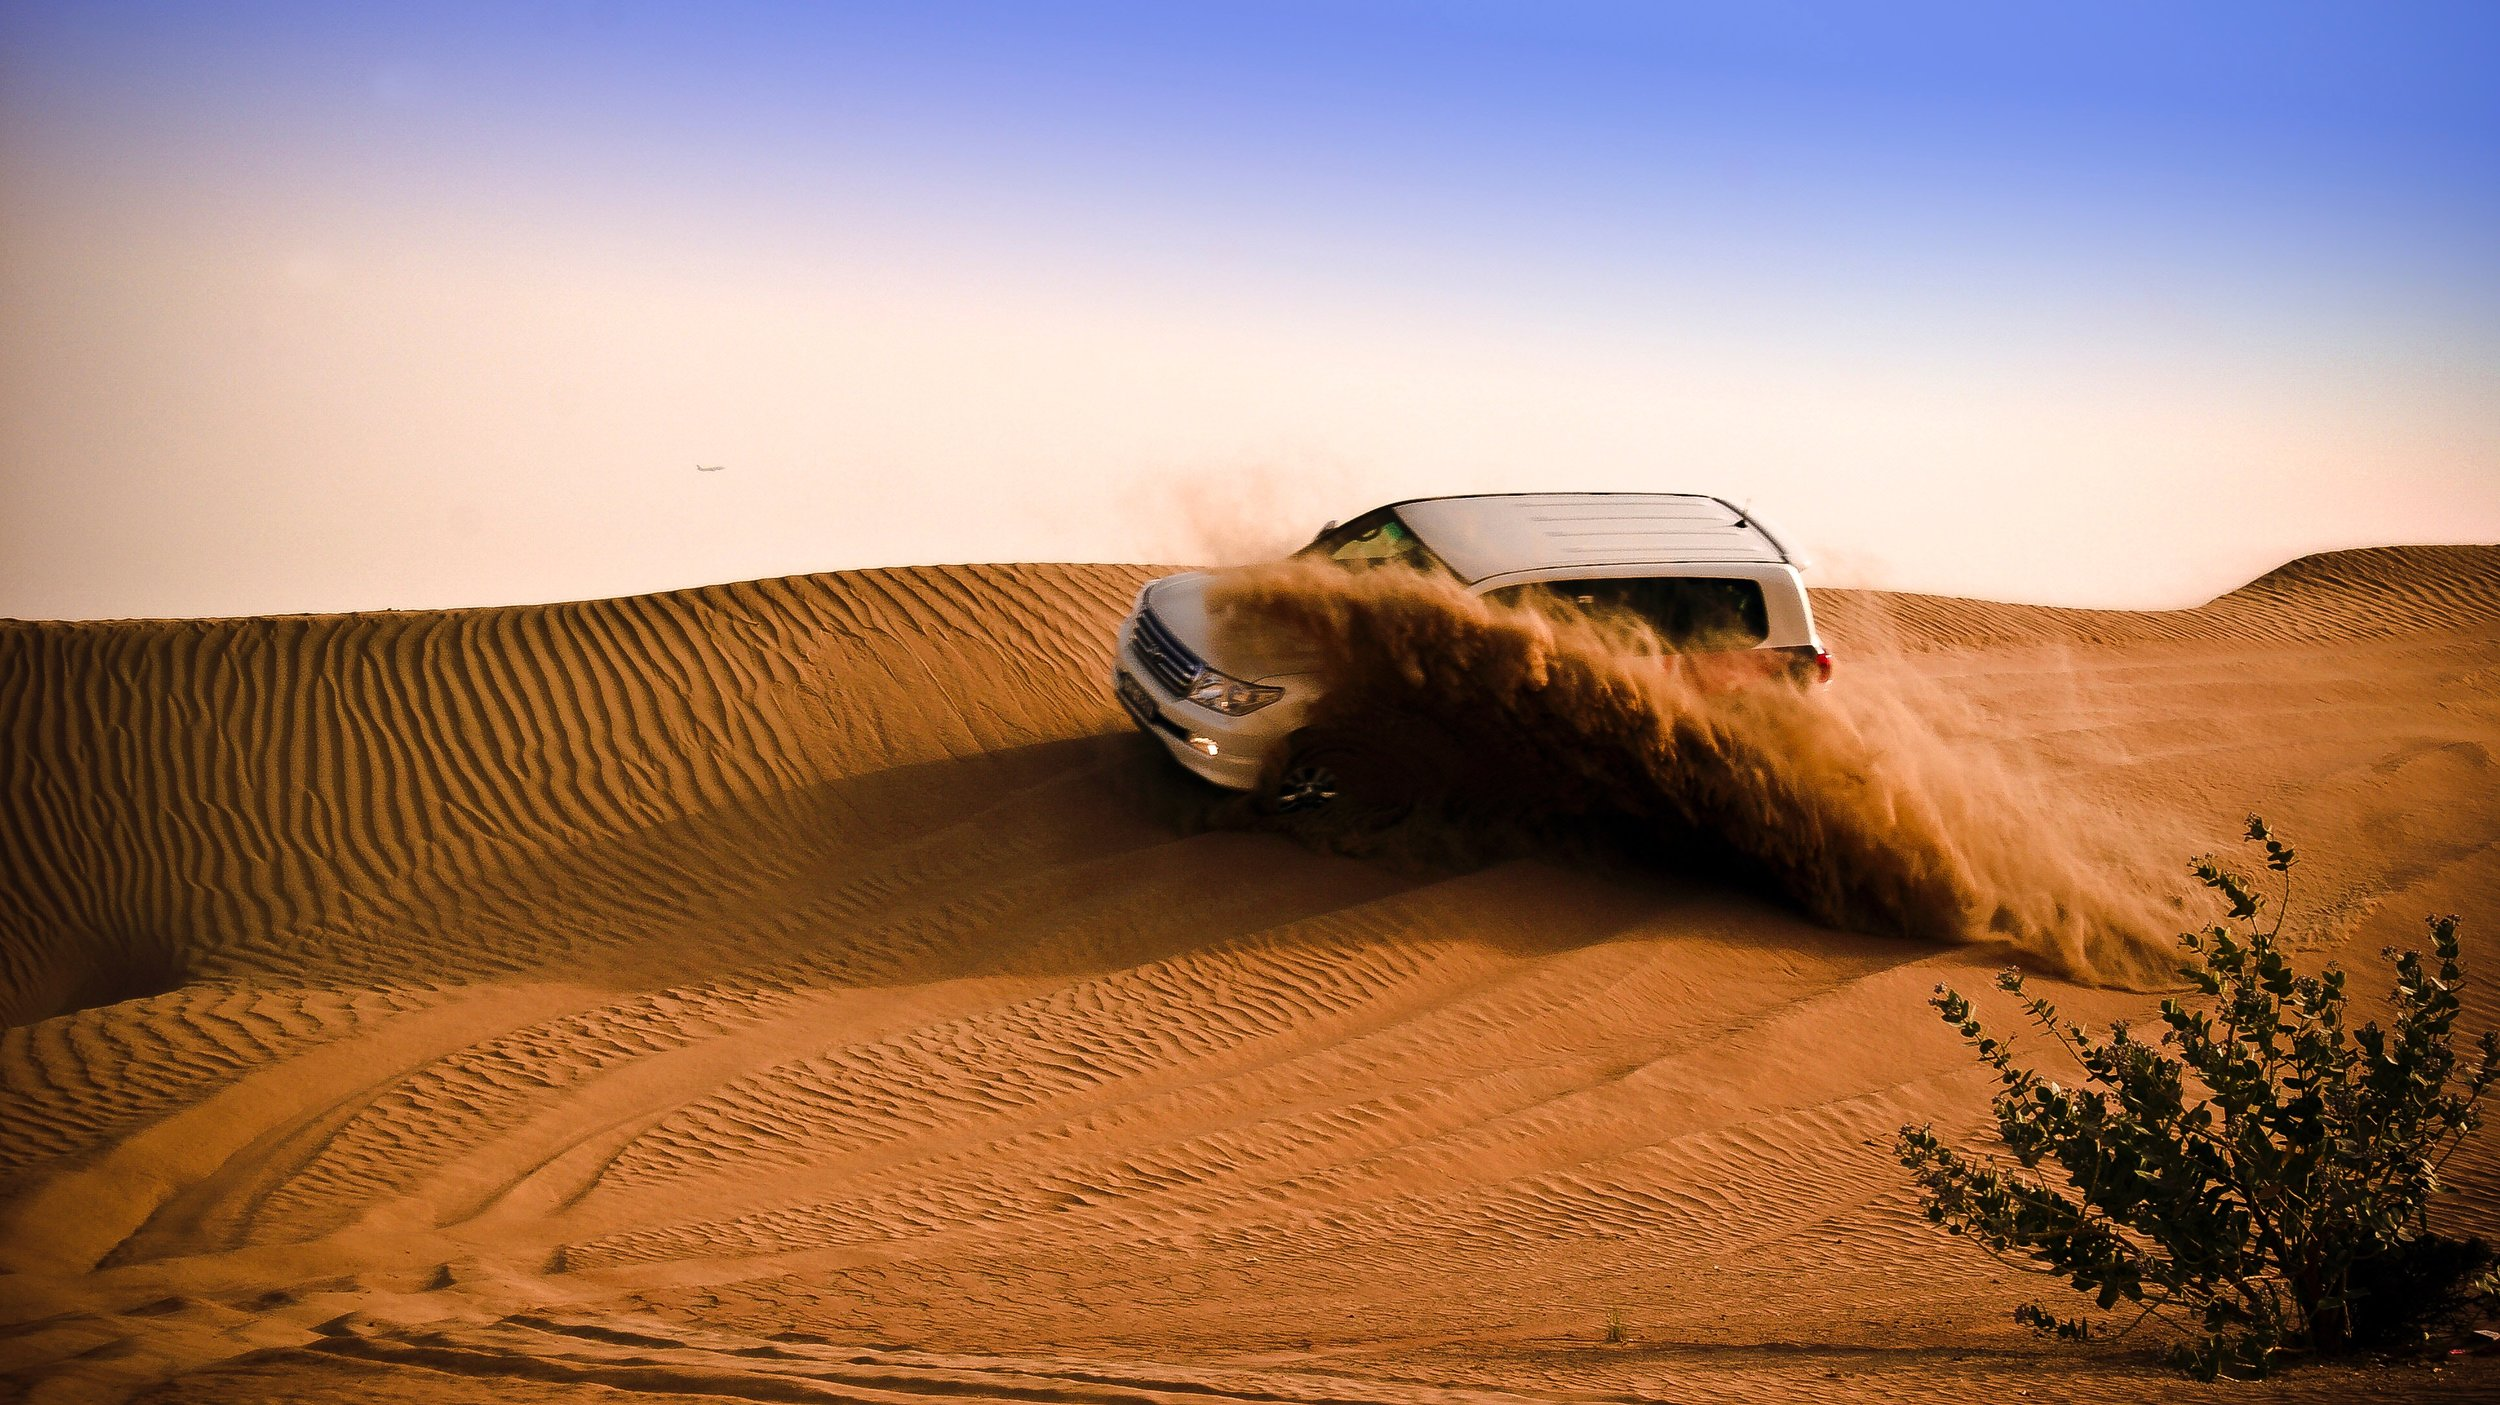 Desert Safari - Enjoy a thrilling adventure of dune bashing followed by an evening of traditional Arabian charm with local performances and delicacies.Date: To be updated soonTime: 3:00 pm - 9:00 pmPrice: Complimentary